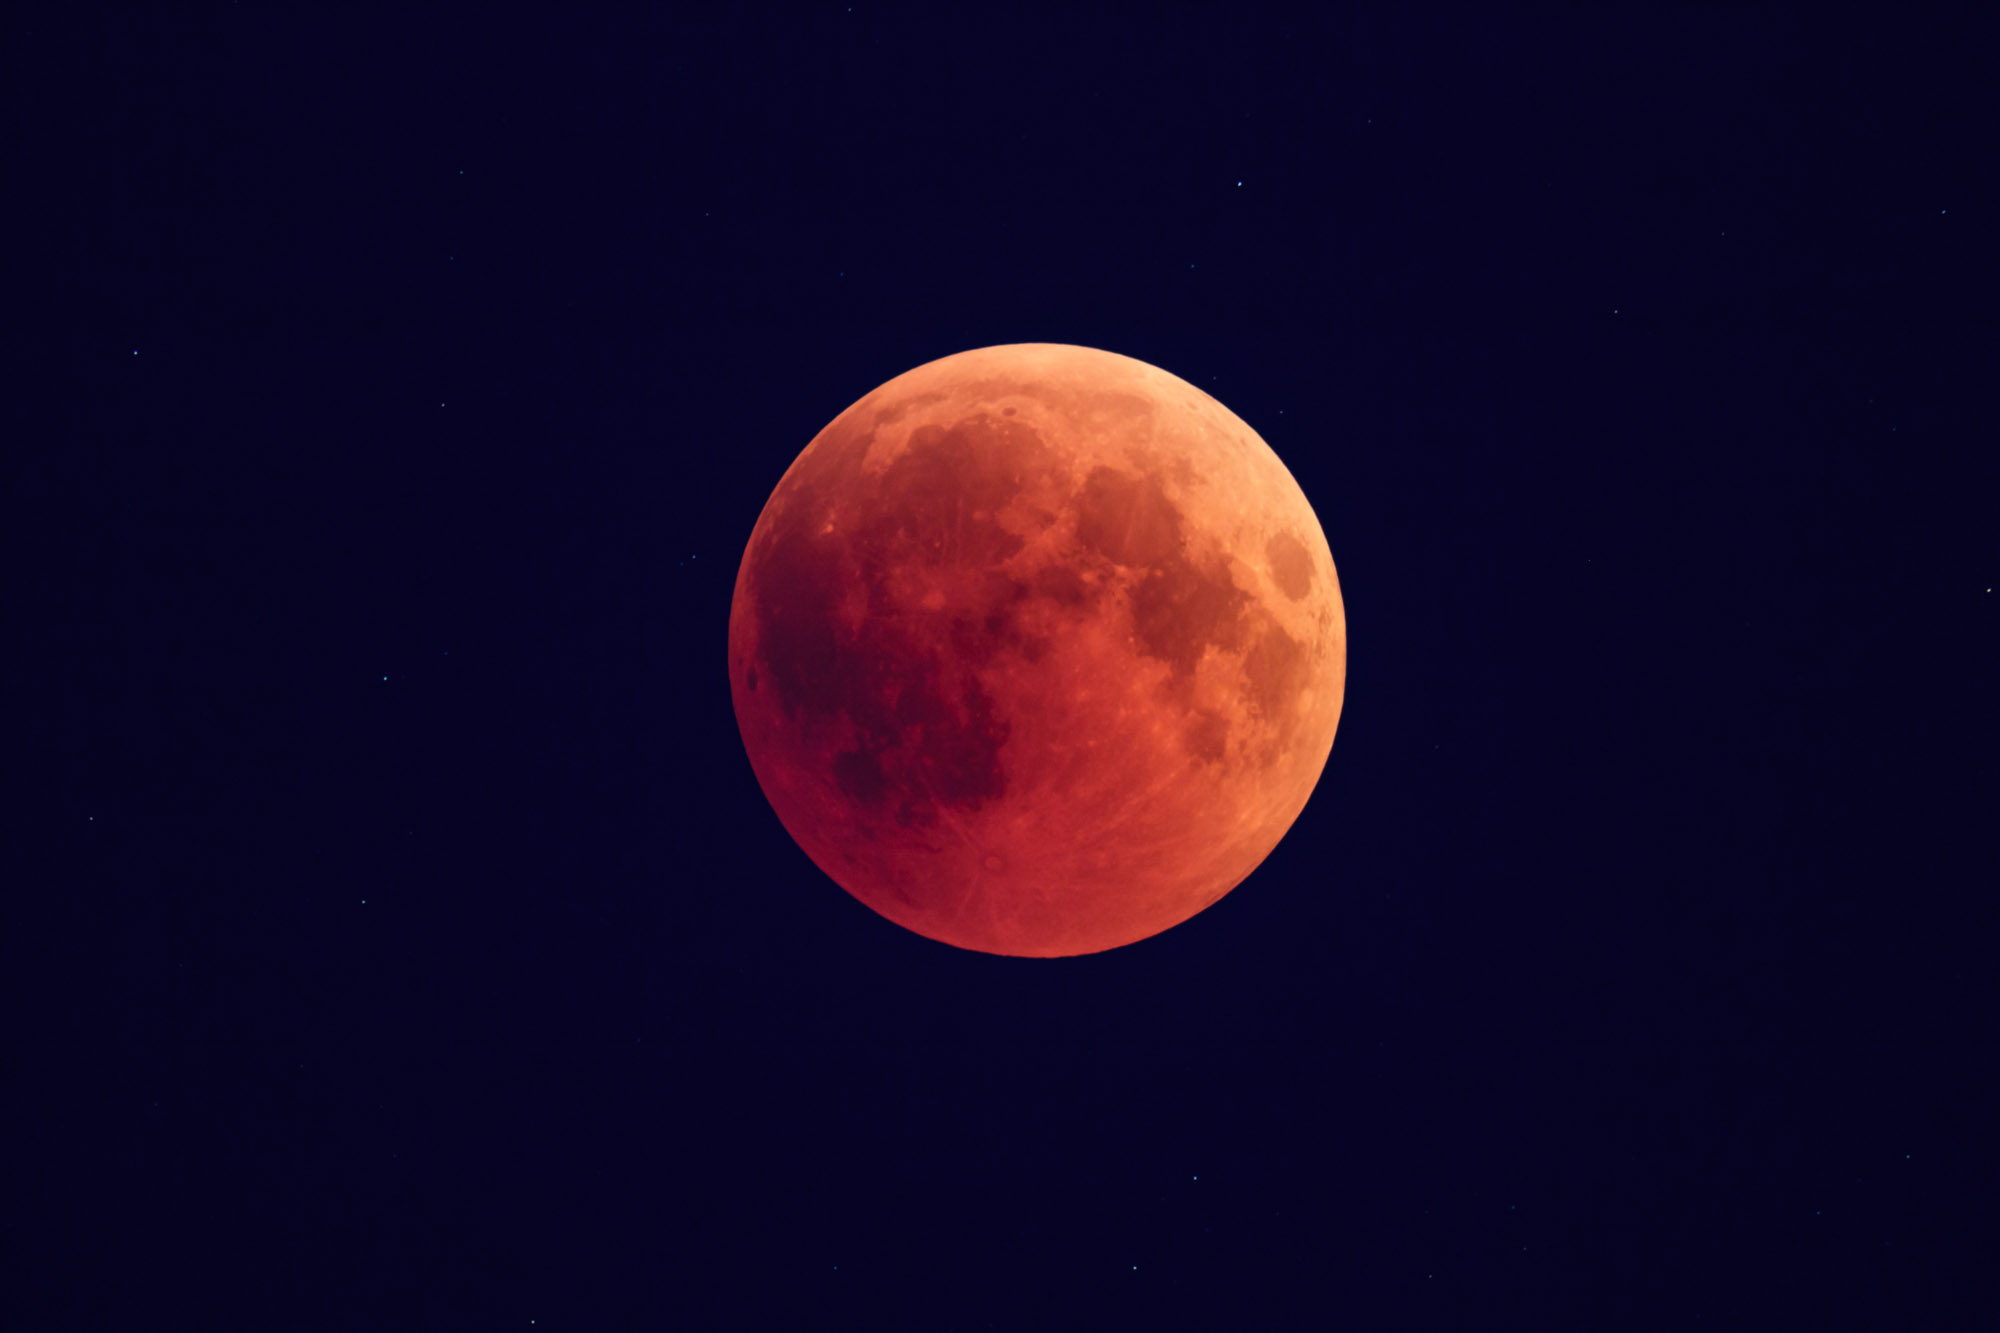 The blood moon in full view